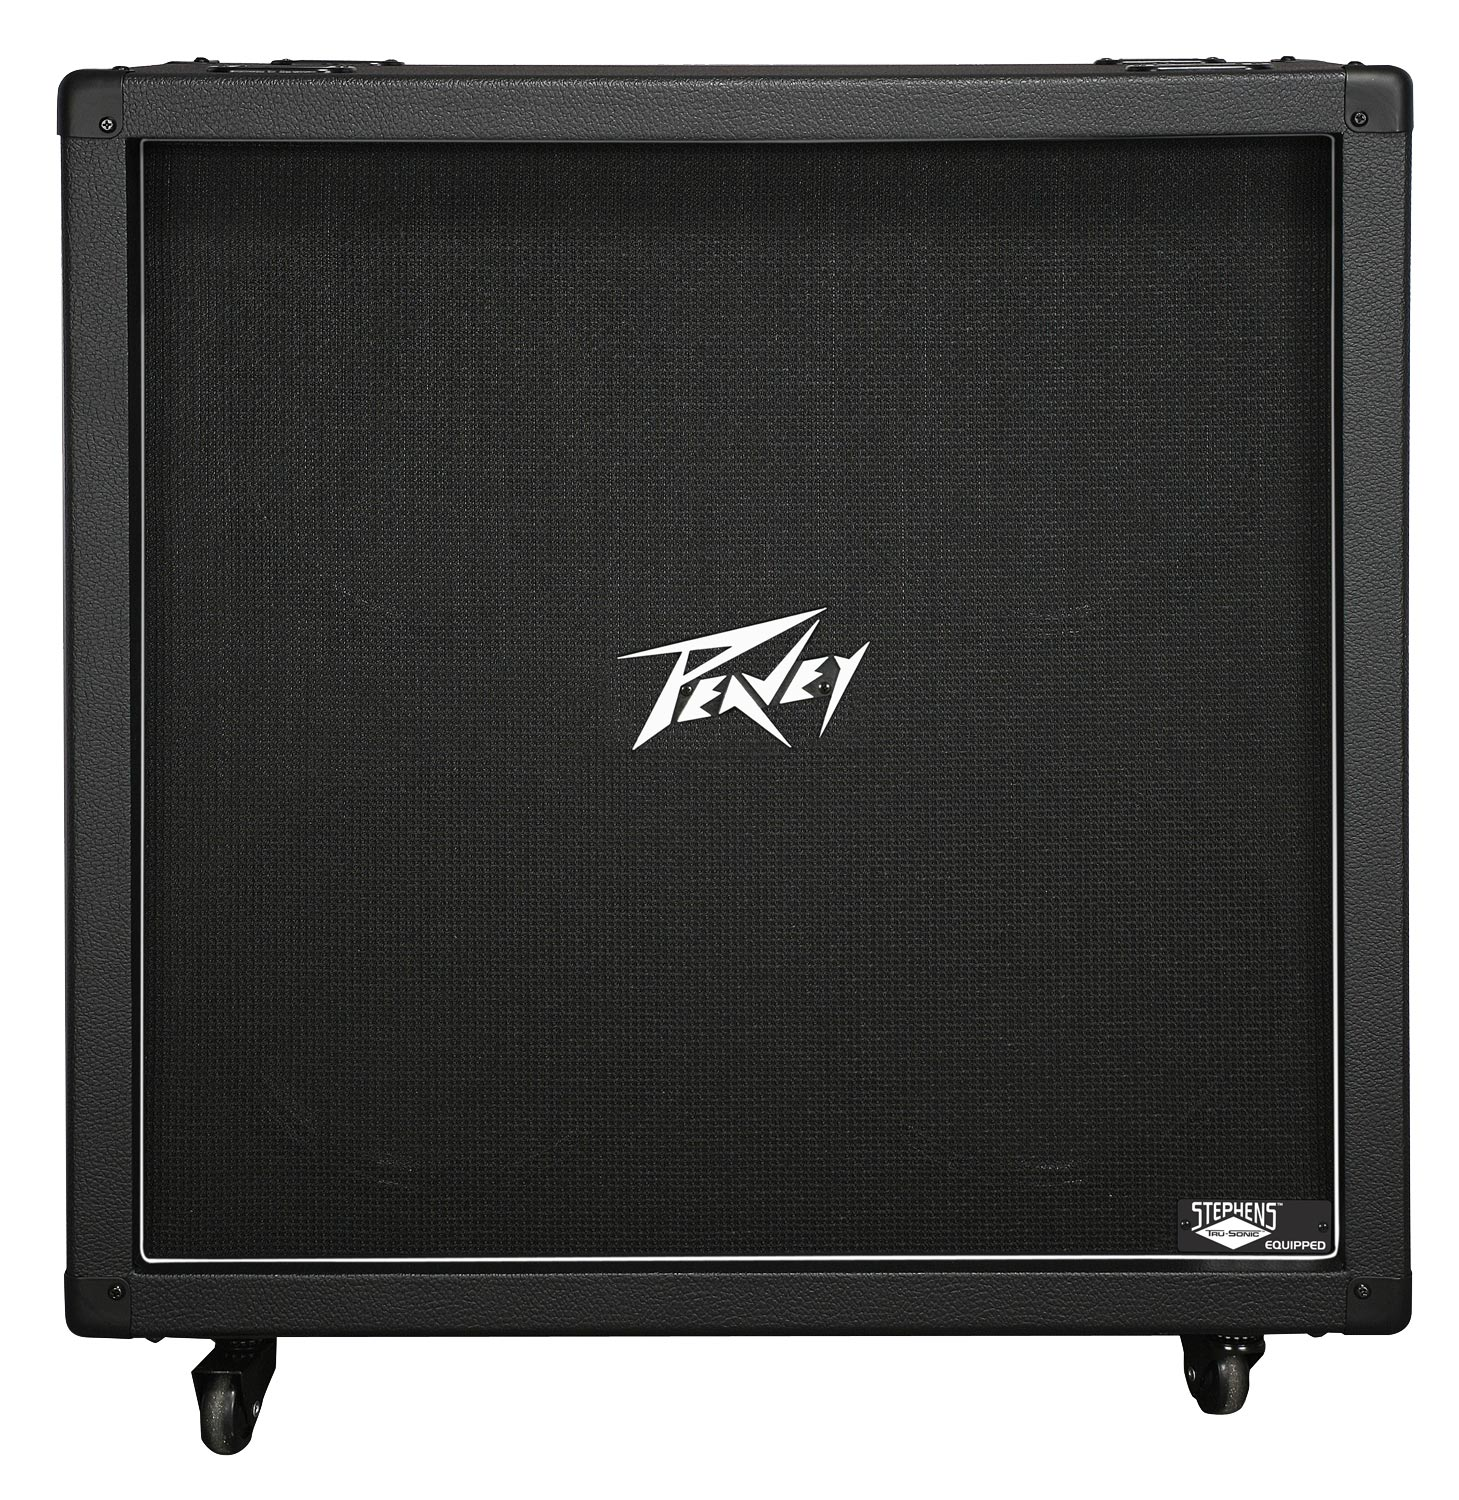 2 peavey 430b 412 guitar straight cabinet celestion greenback 4 12 speakers pev16 package92